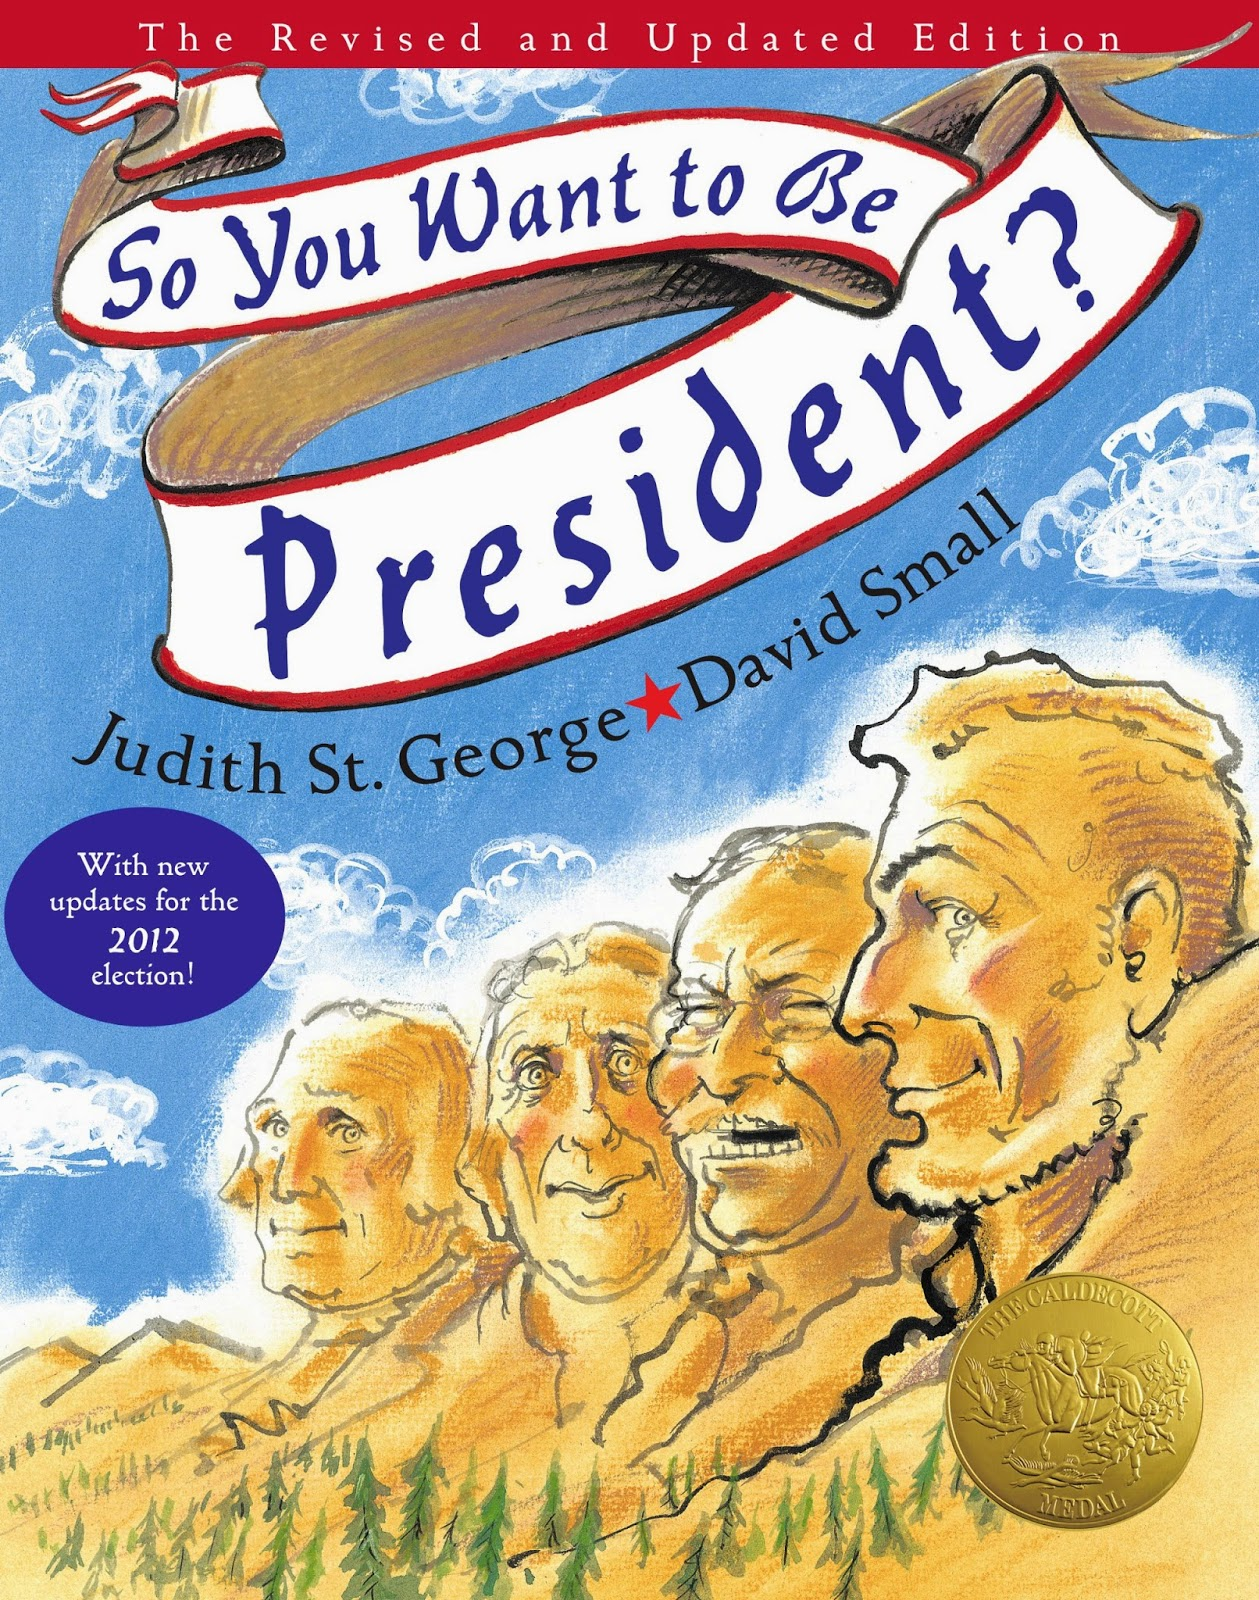 So You Want To Be President, part of book review list about the United States